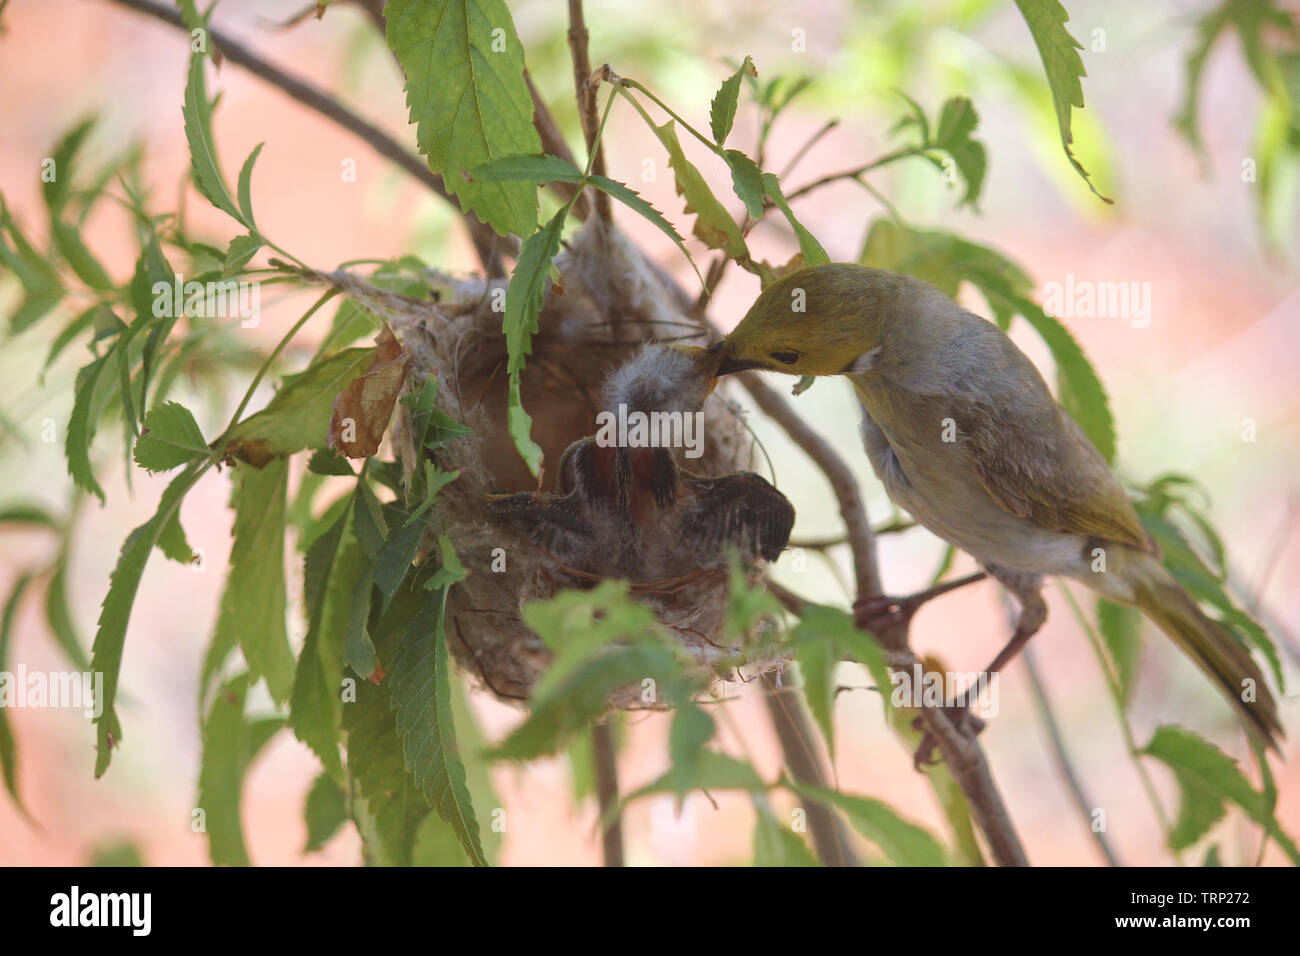 White-plumed Honeyeater looking after her chick in the nest, Western Australia - Stock Image